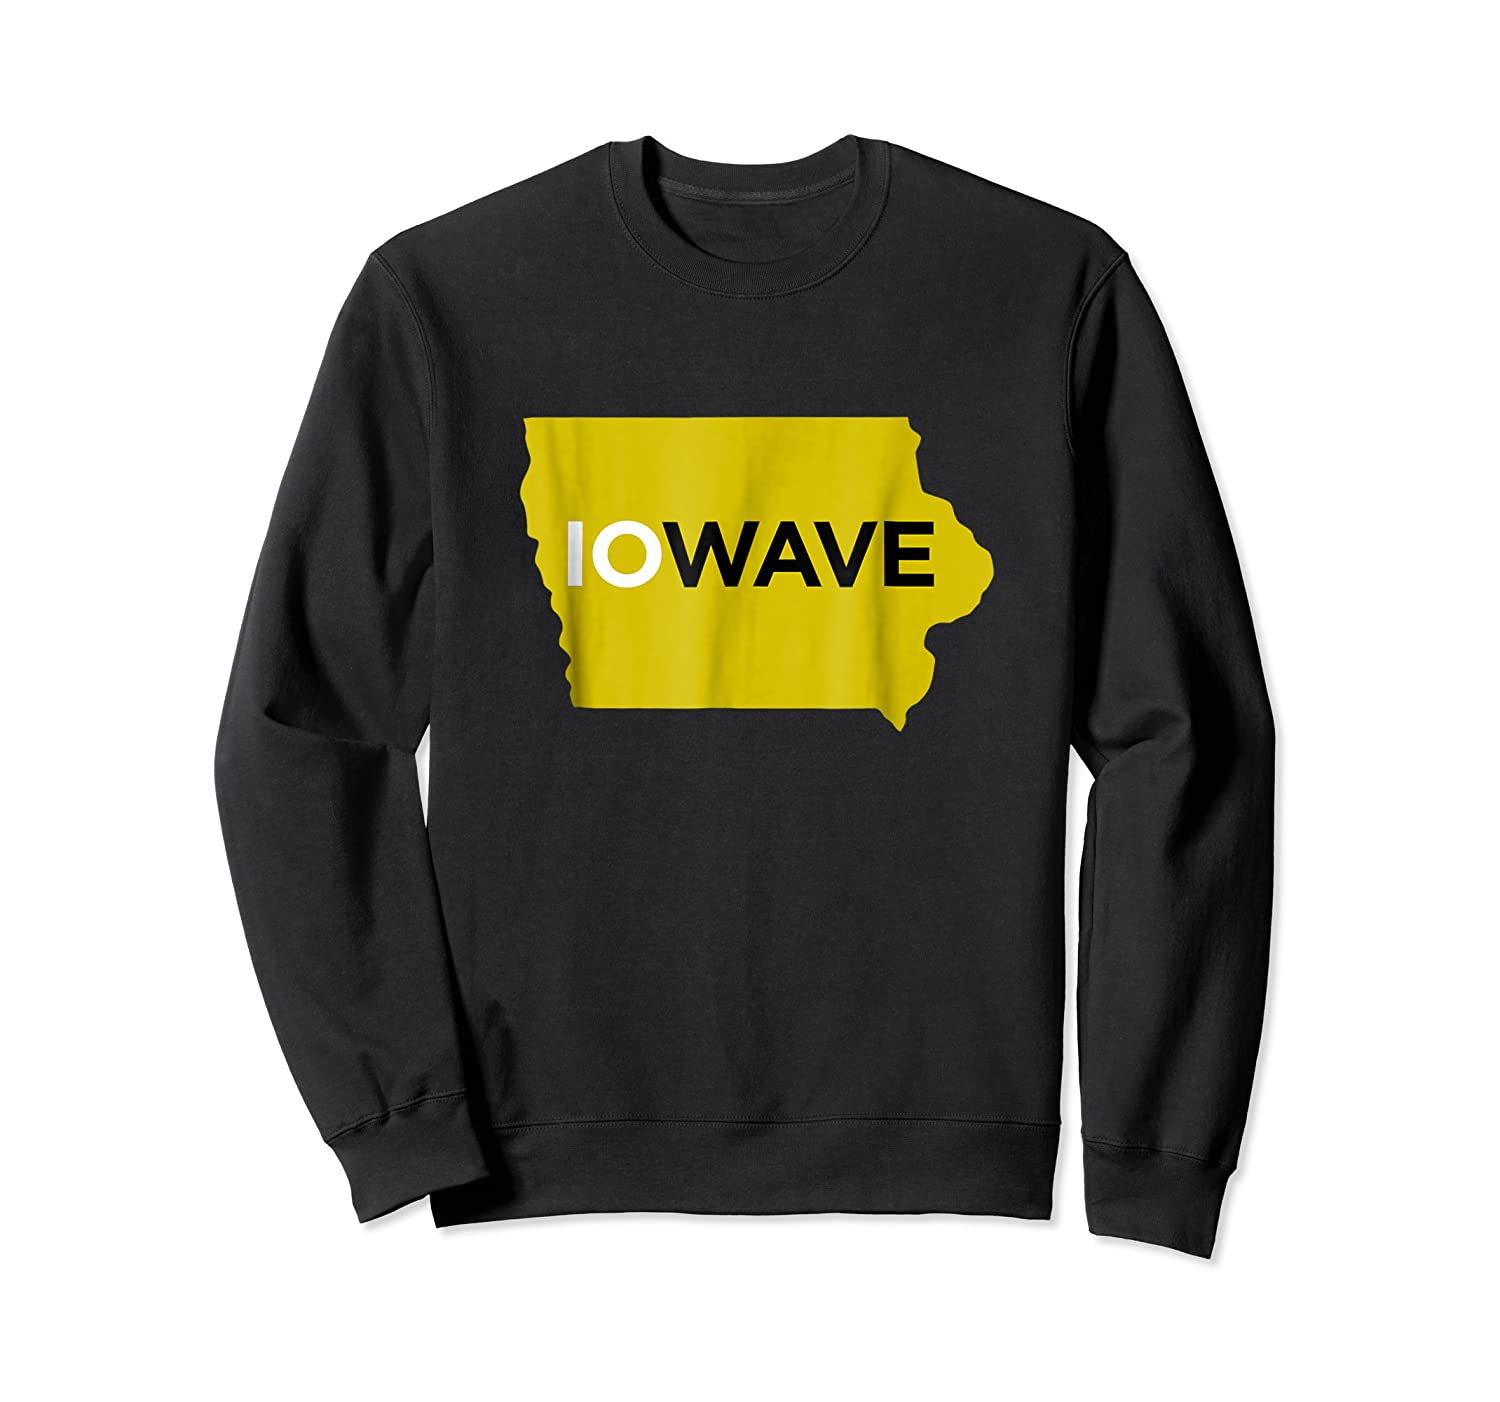 State Of Iowa Iowave Wave T For Fans And Residents Shirts Crewneck Sweater